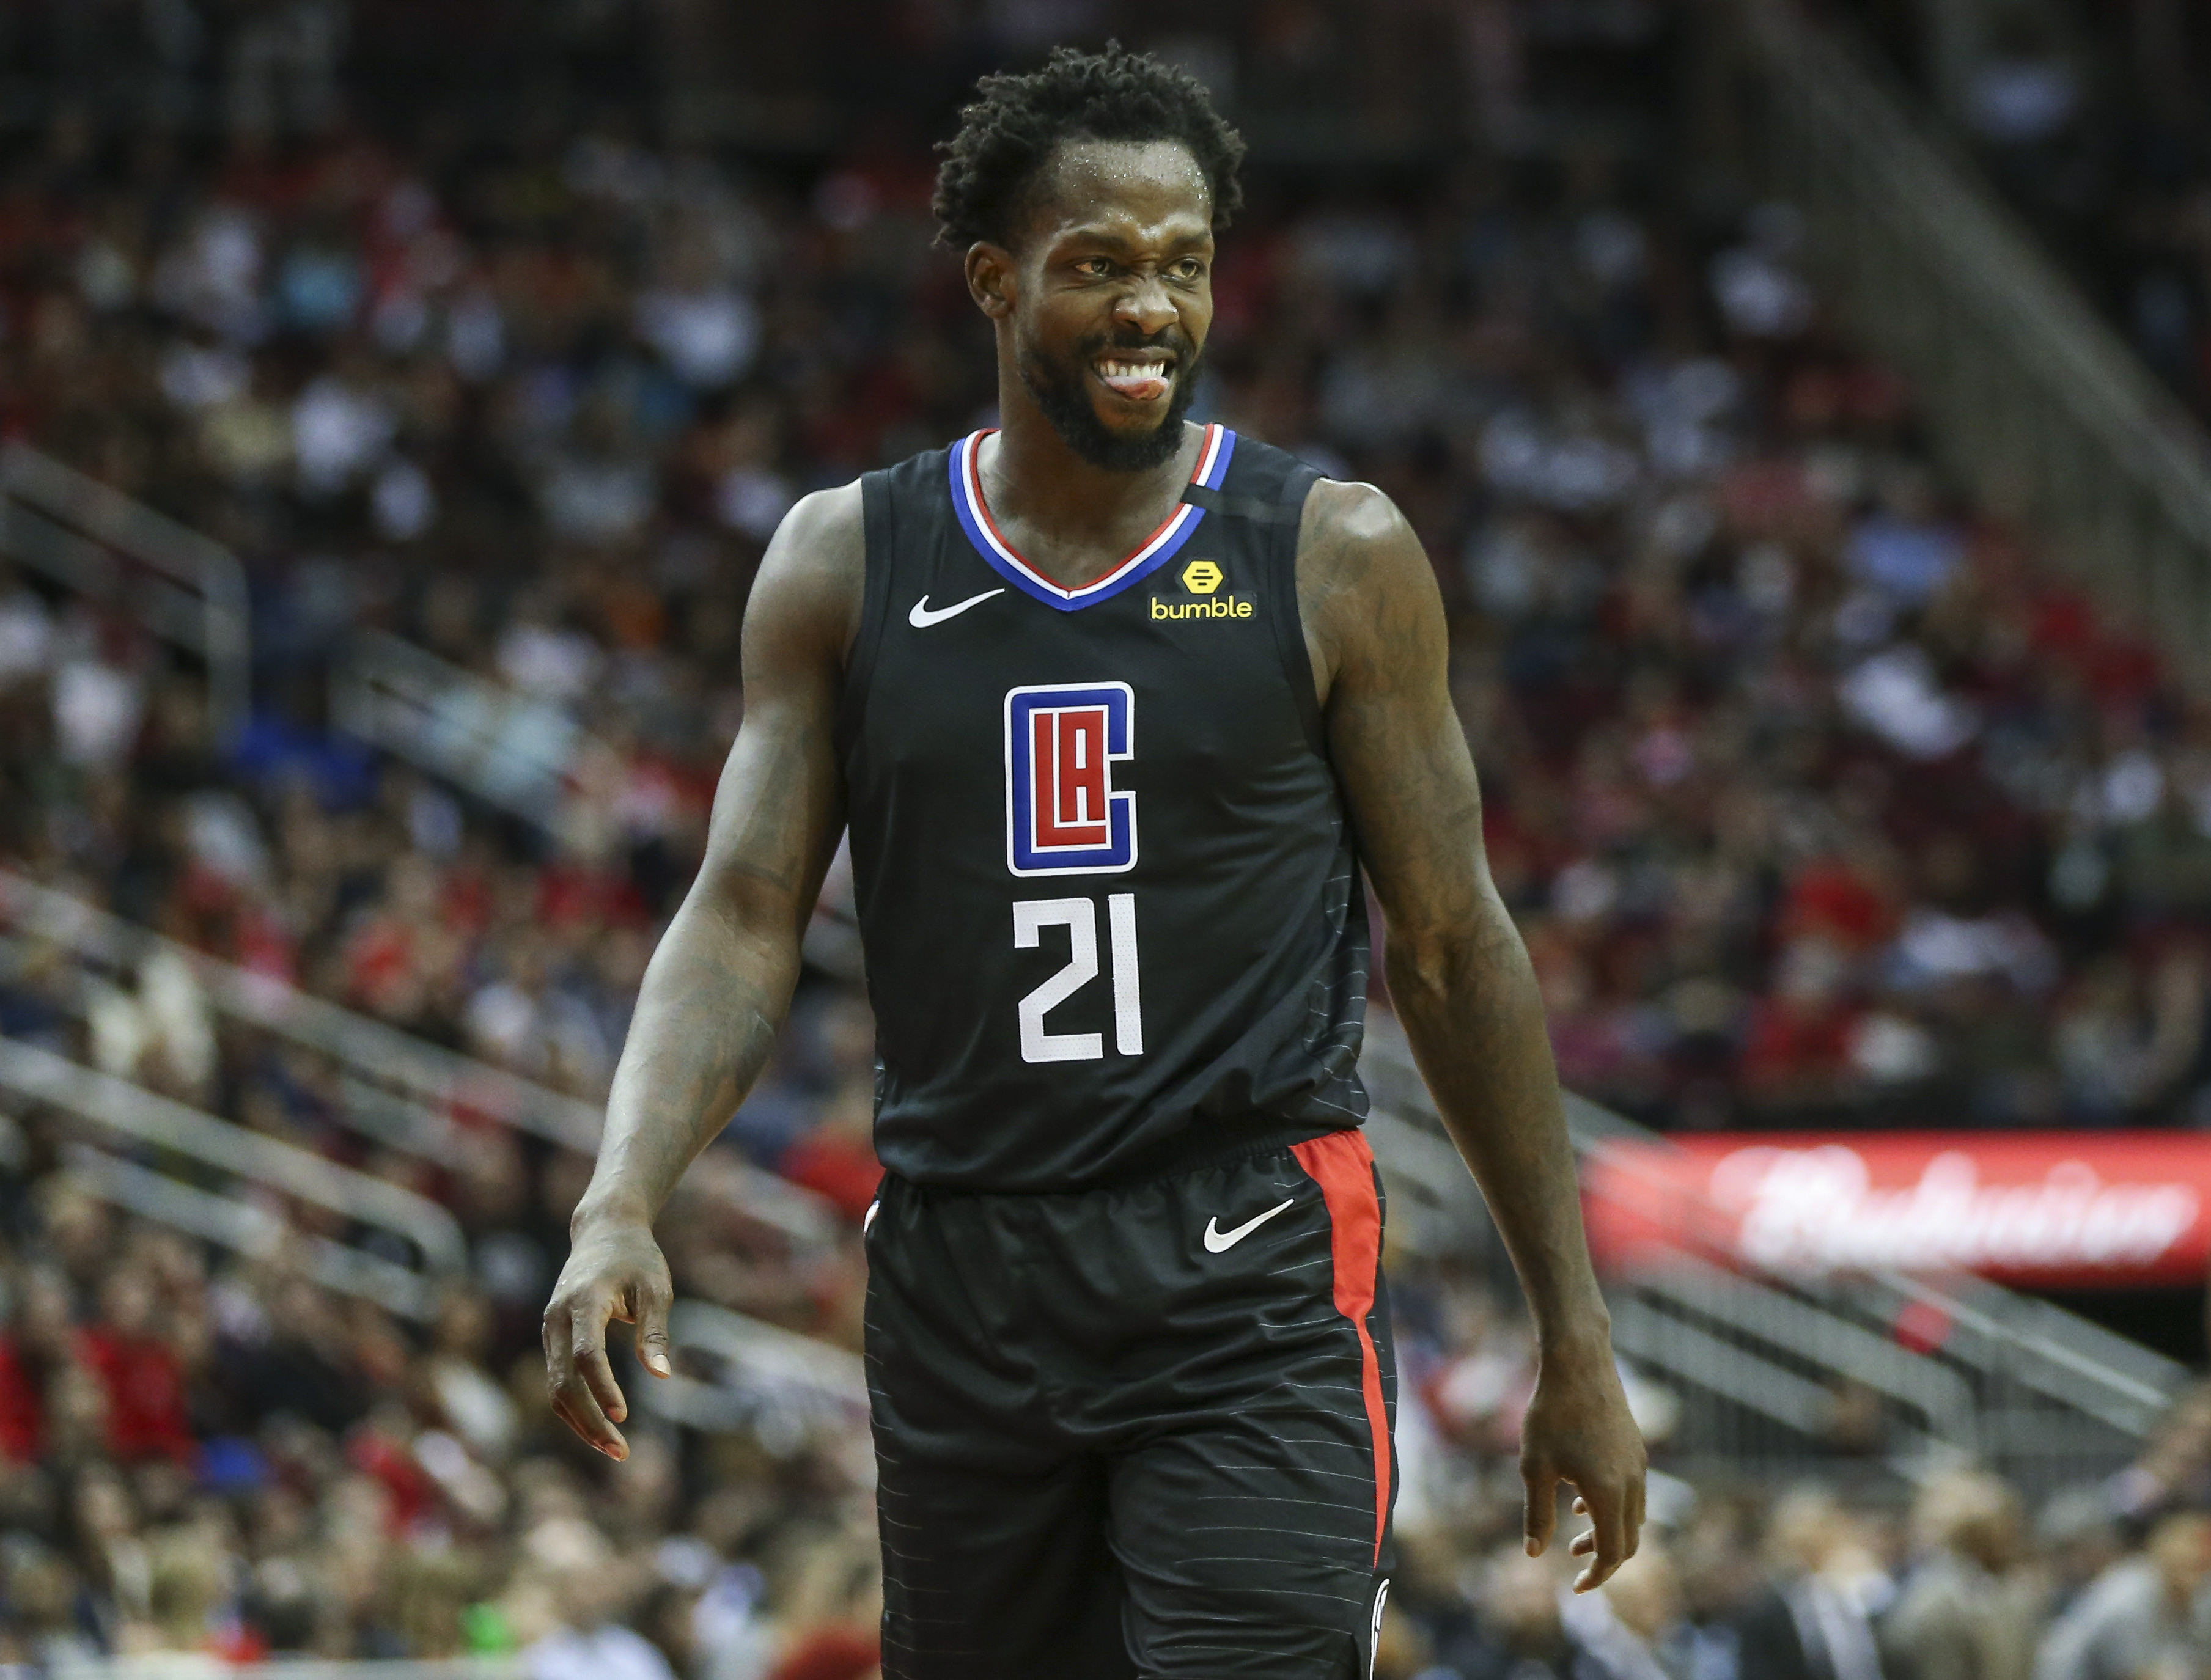 Patrick Beverley throws shade at LeBron James after loss